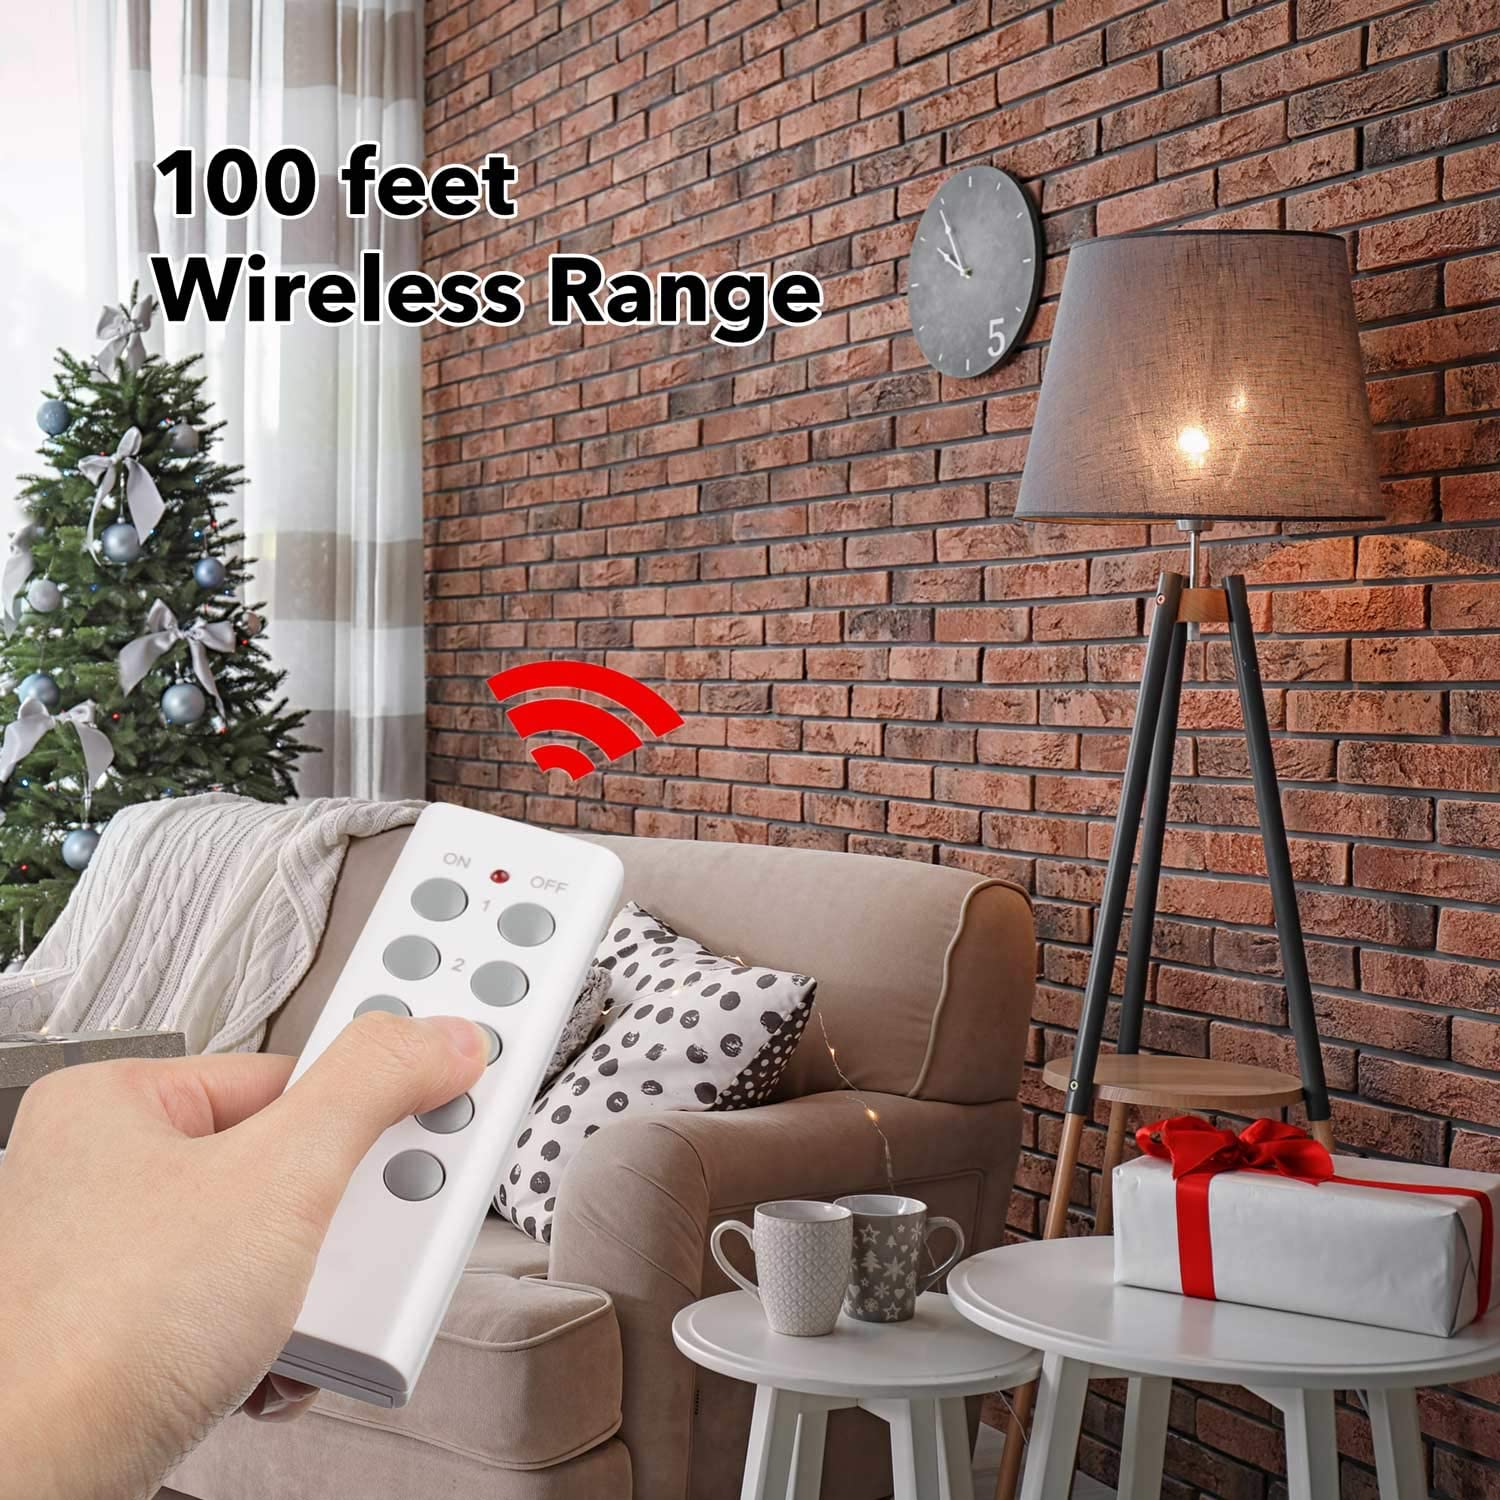 BN-LINK ES1513-5-2 Wireless Remote Control Outlet with Extra Long Range (5 Pack) - -